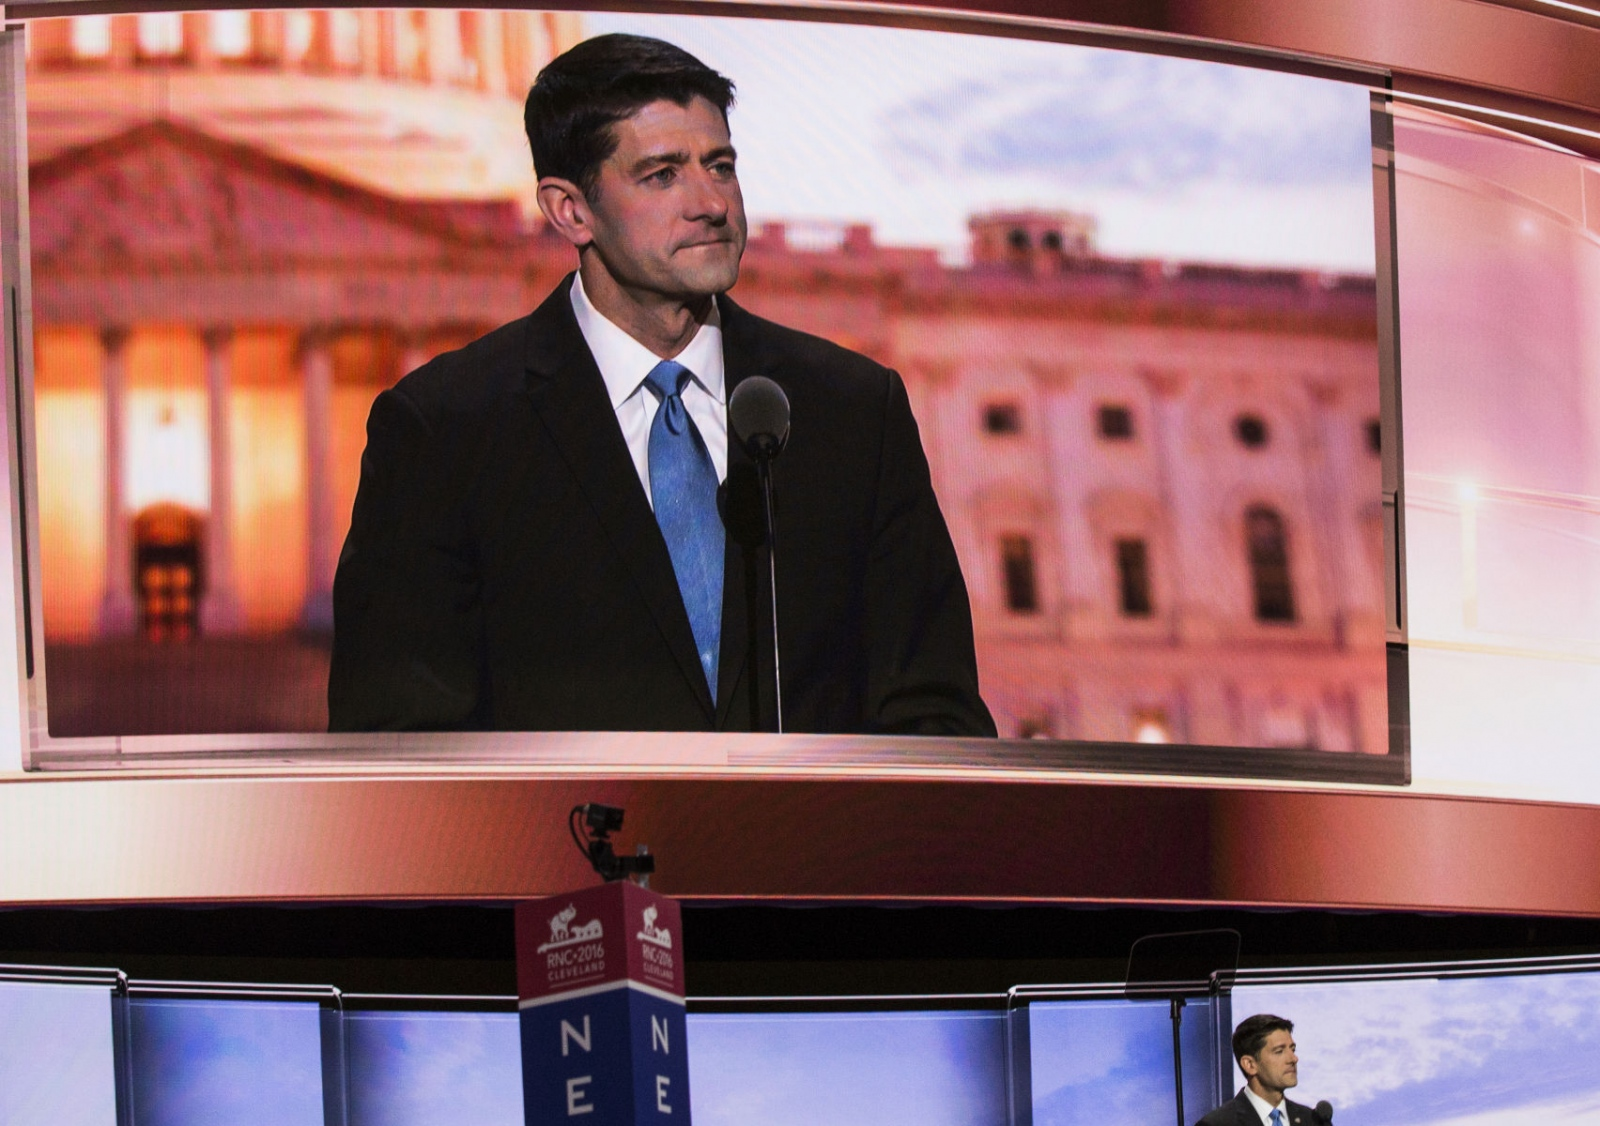 Speaker of the House of Representatives Paul Ryan at the Republican National Convention, pledging his support to Donald Trump. July 20, 2016 (Kevin C Downs).